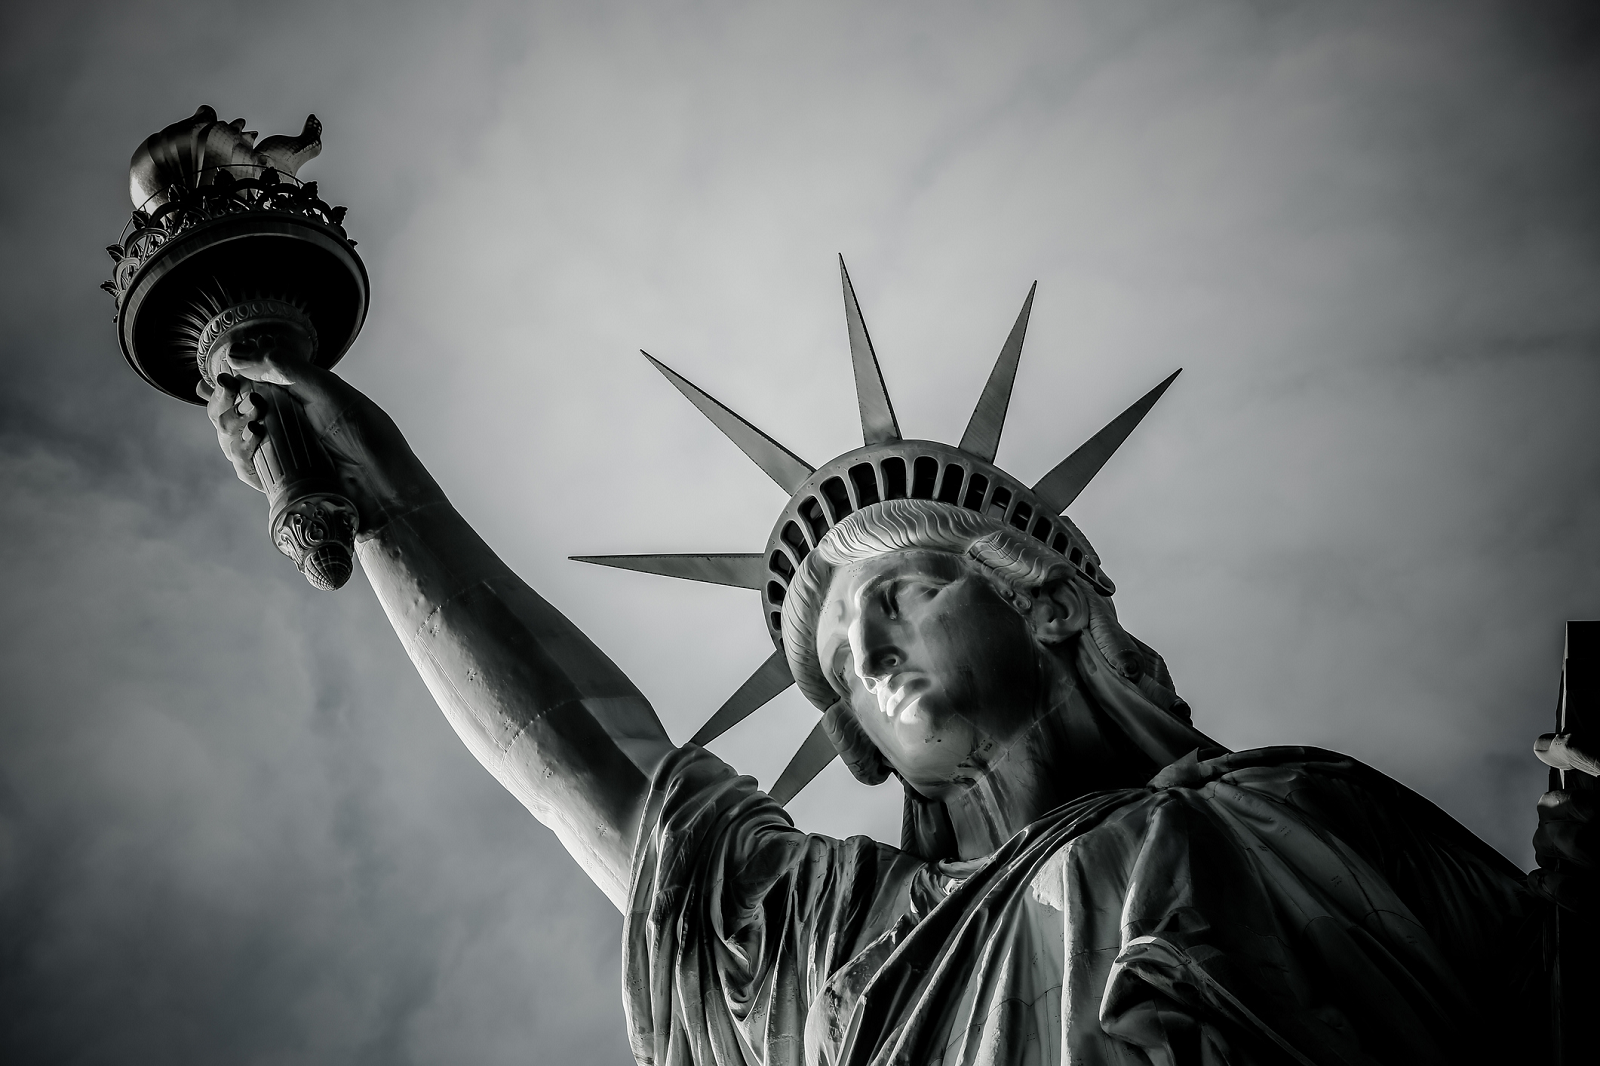 The Statue of Liberty & The Ideal of Welcoming The Stranger